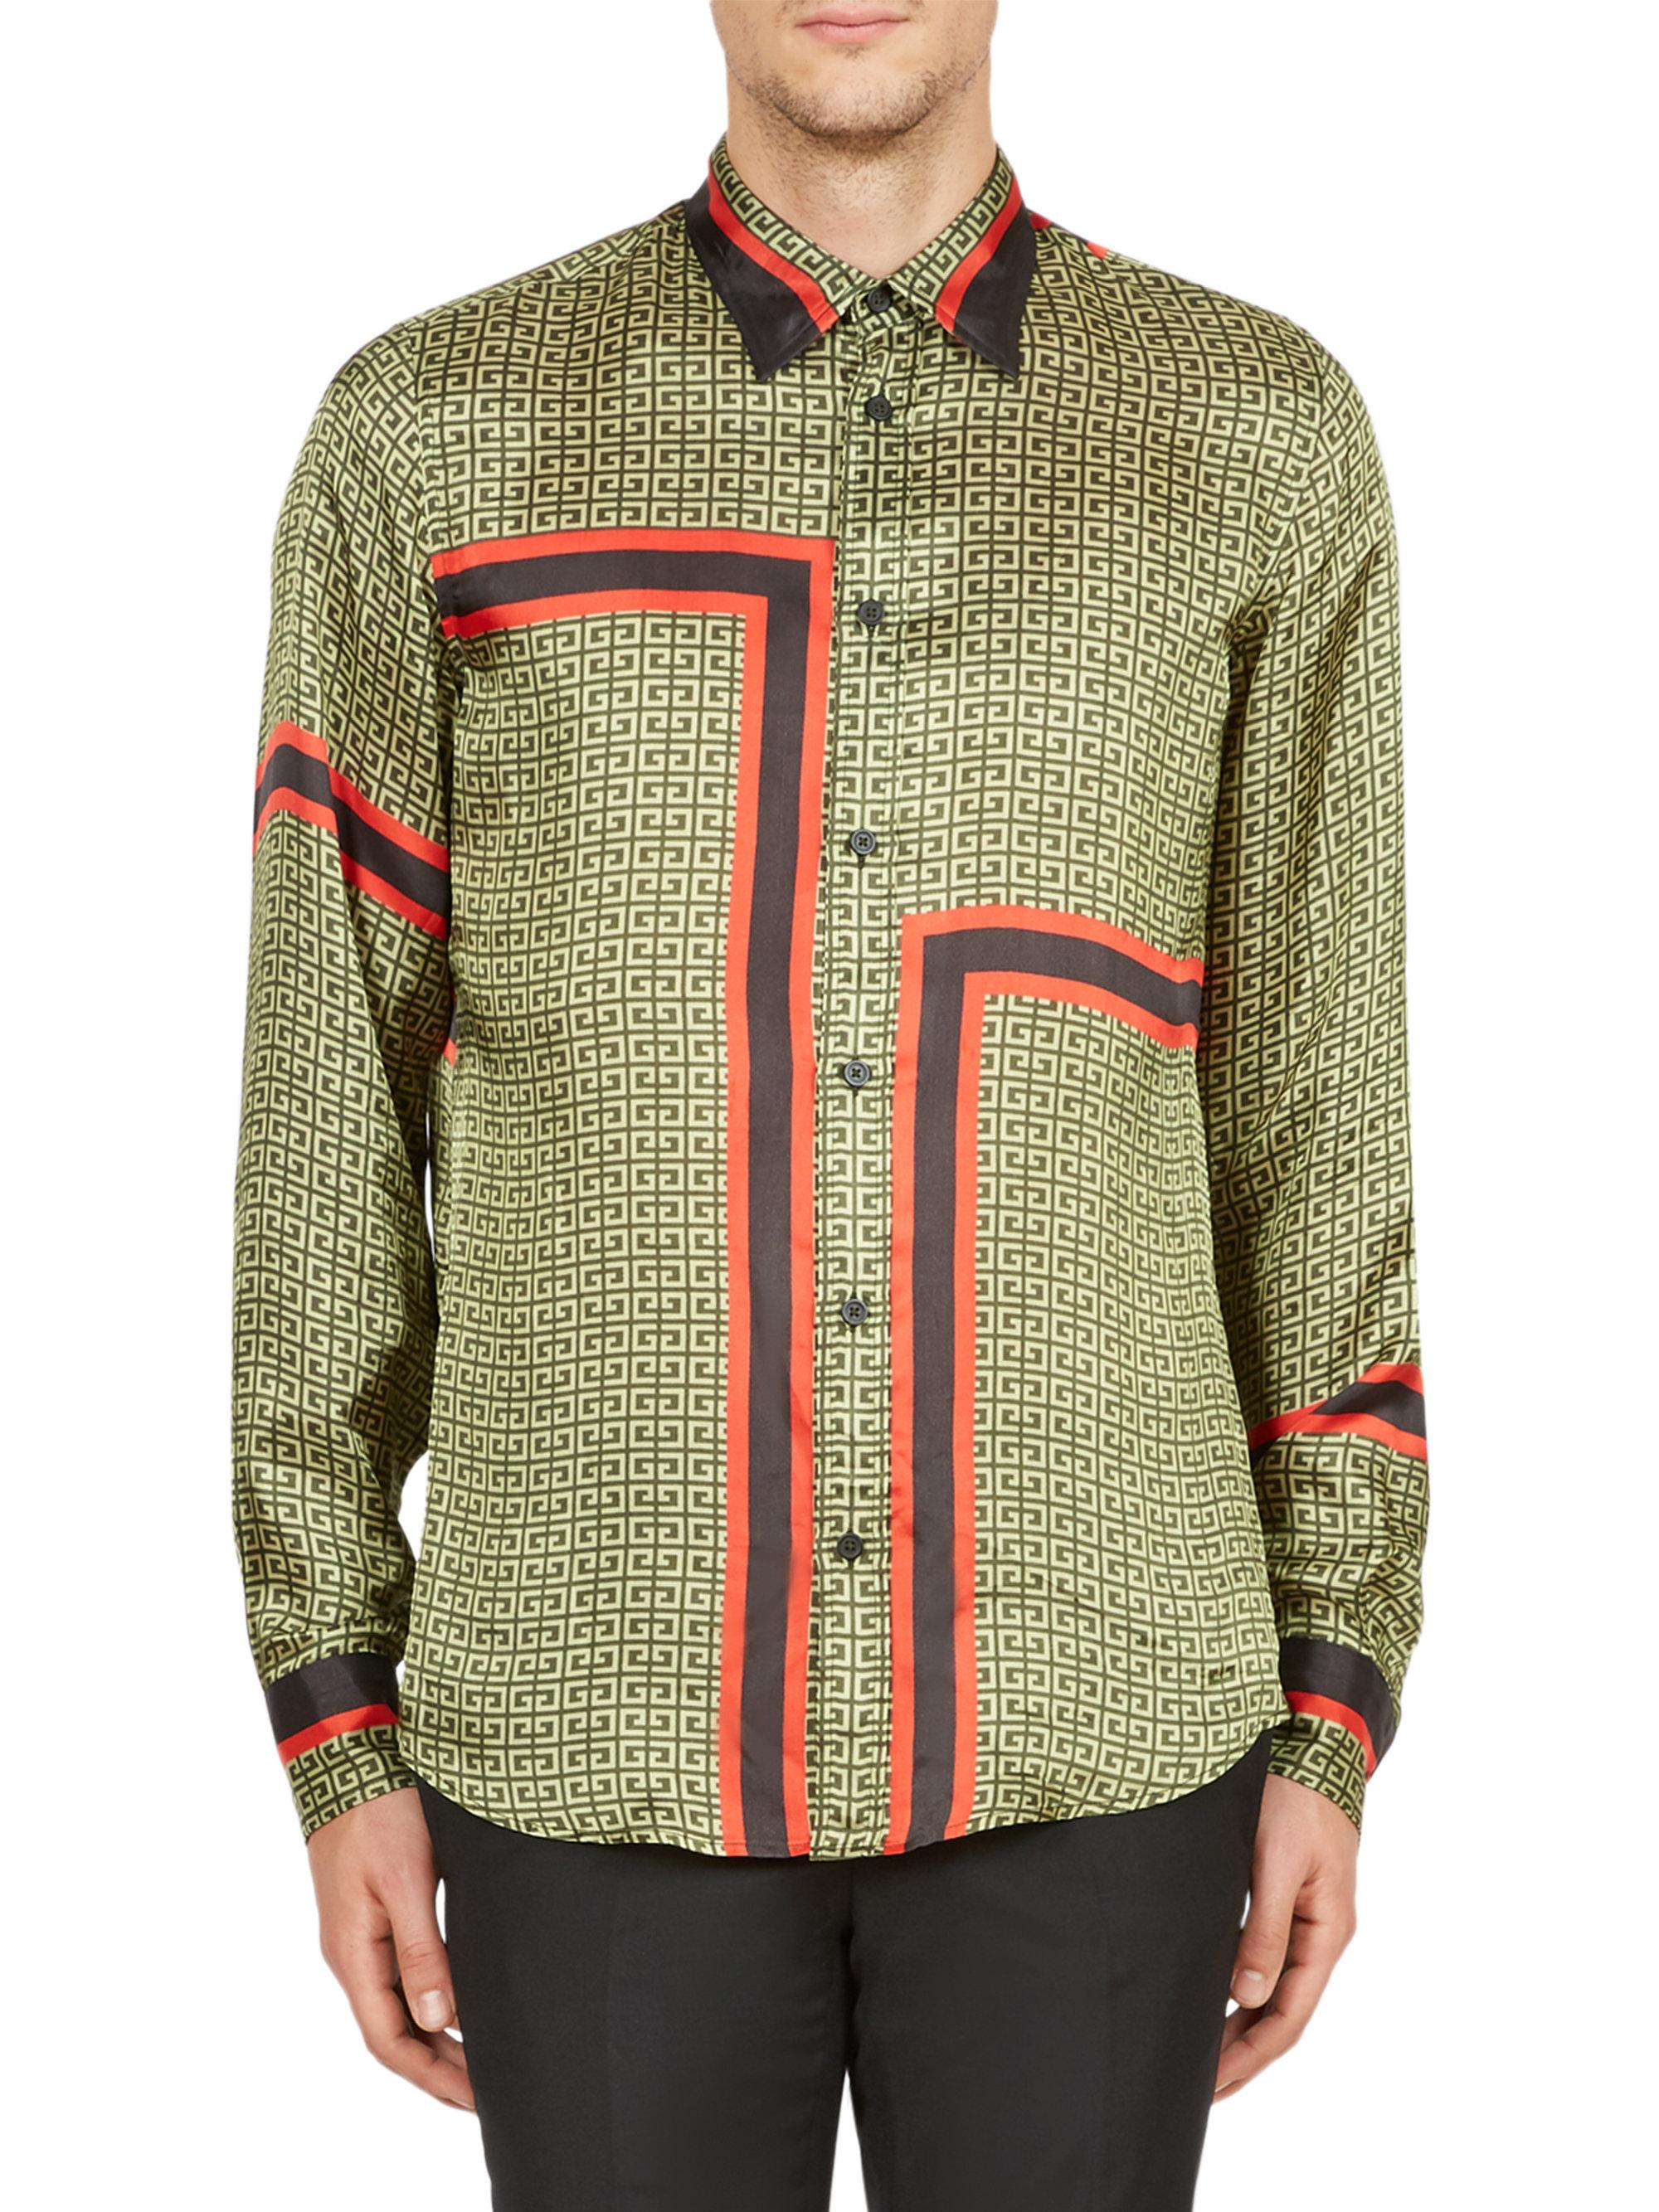 Free Shipping Sale Clearance Amazing Price 4G printed shirt - Black Givenchy Discount Lowest Price gR23j